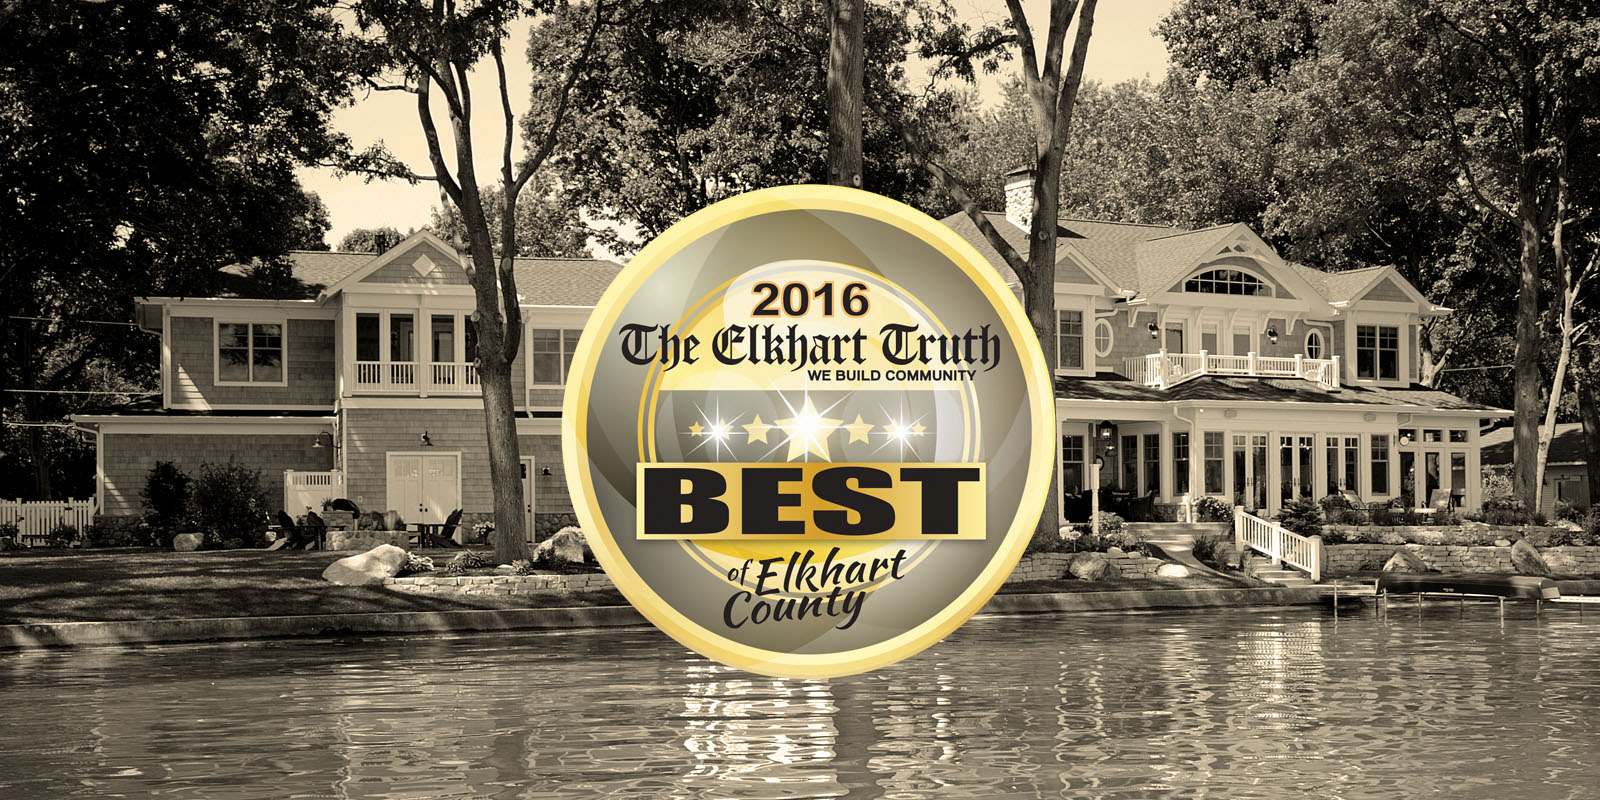 Best Home Builder of Elkhart County 2016